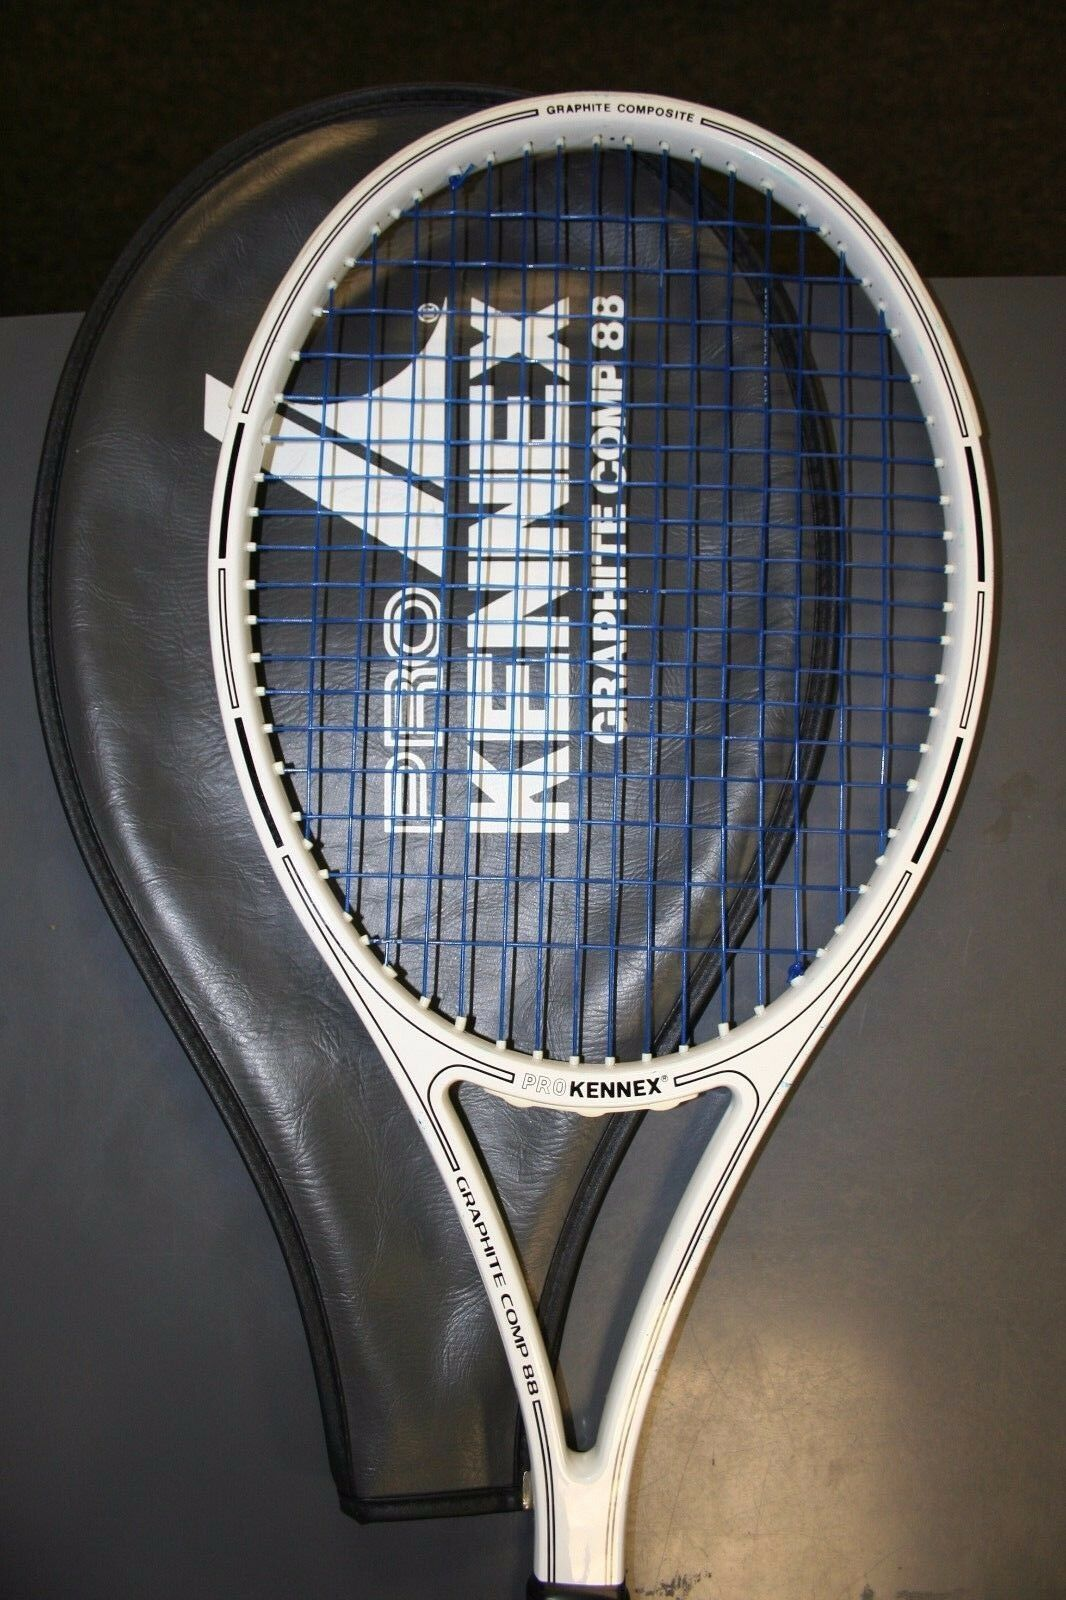 Pro Kennex Graphite Composite 88 Tennis Racquet w  Cover Used Free USA Shipping